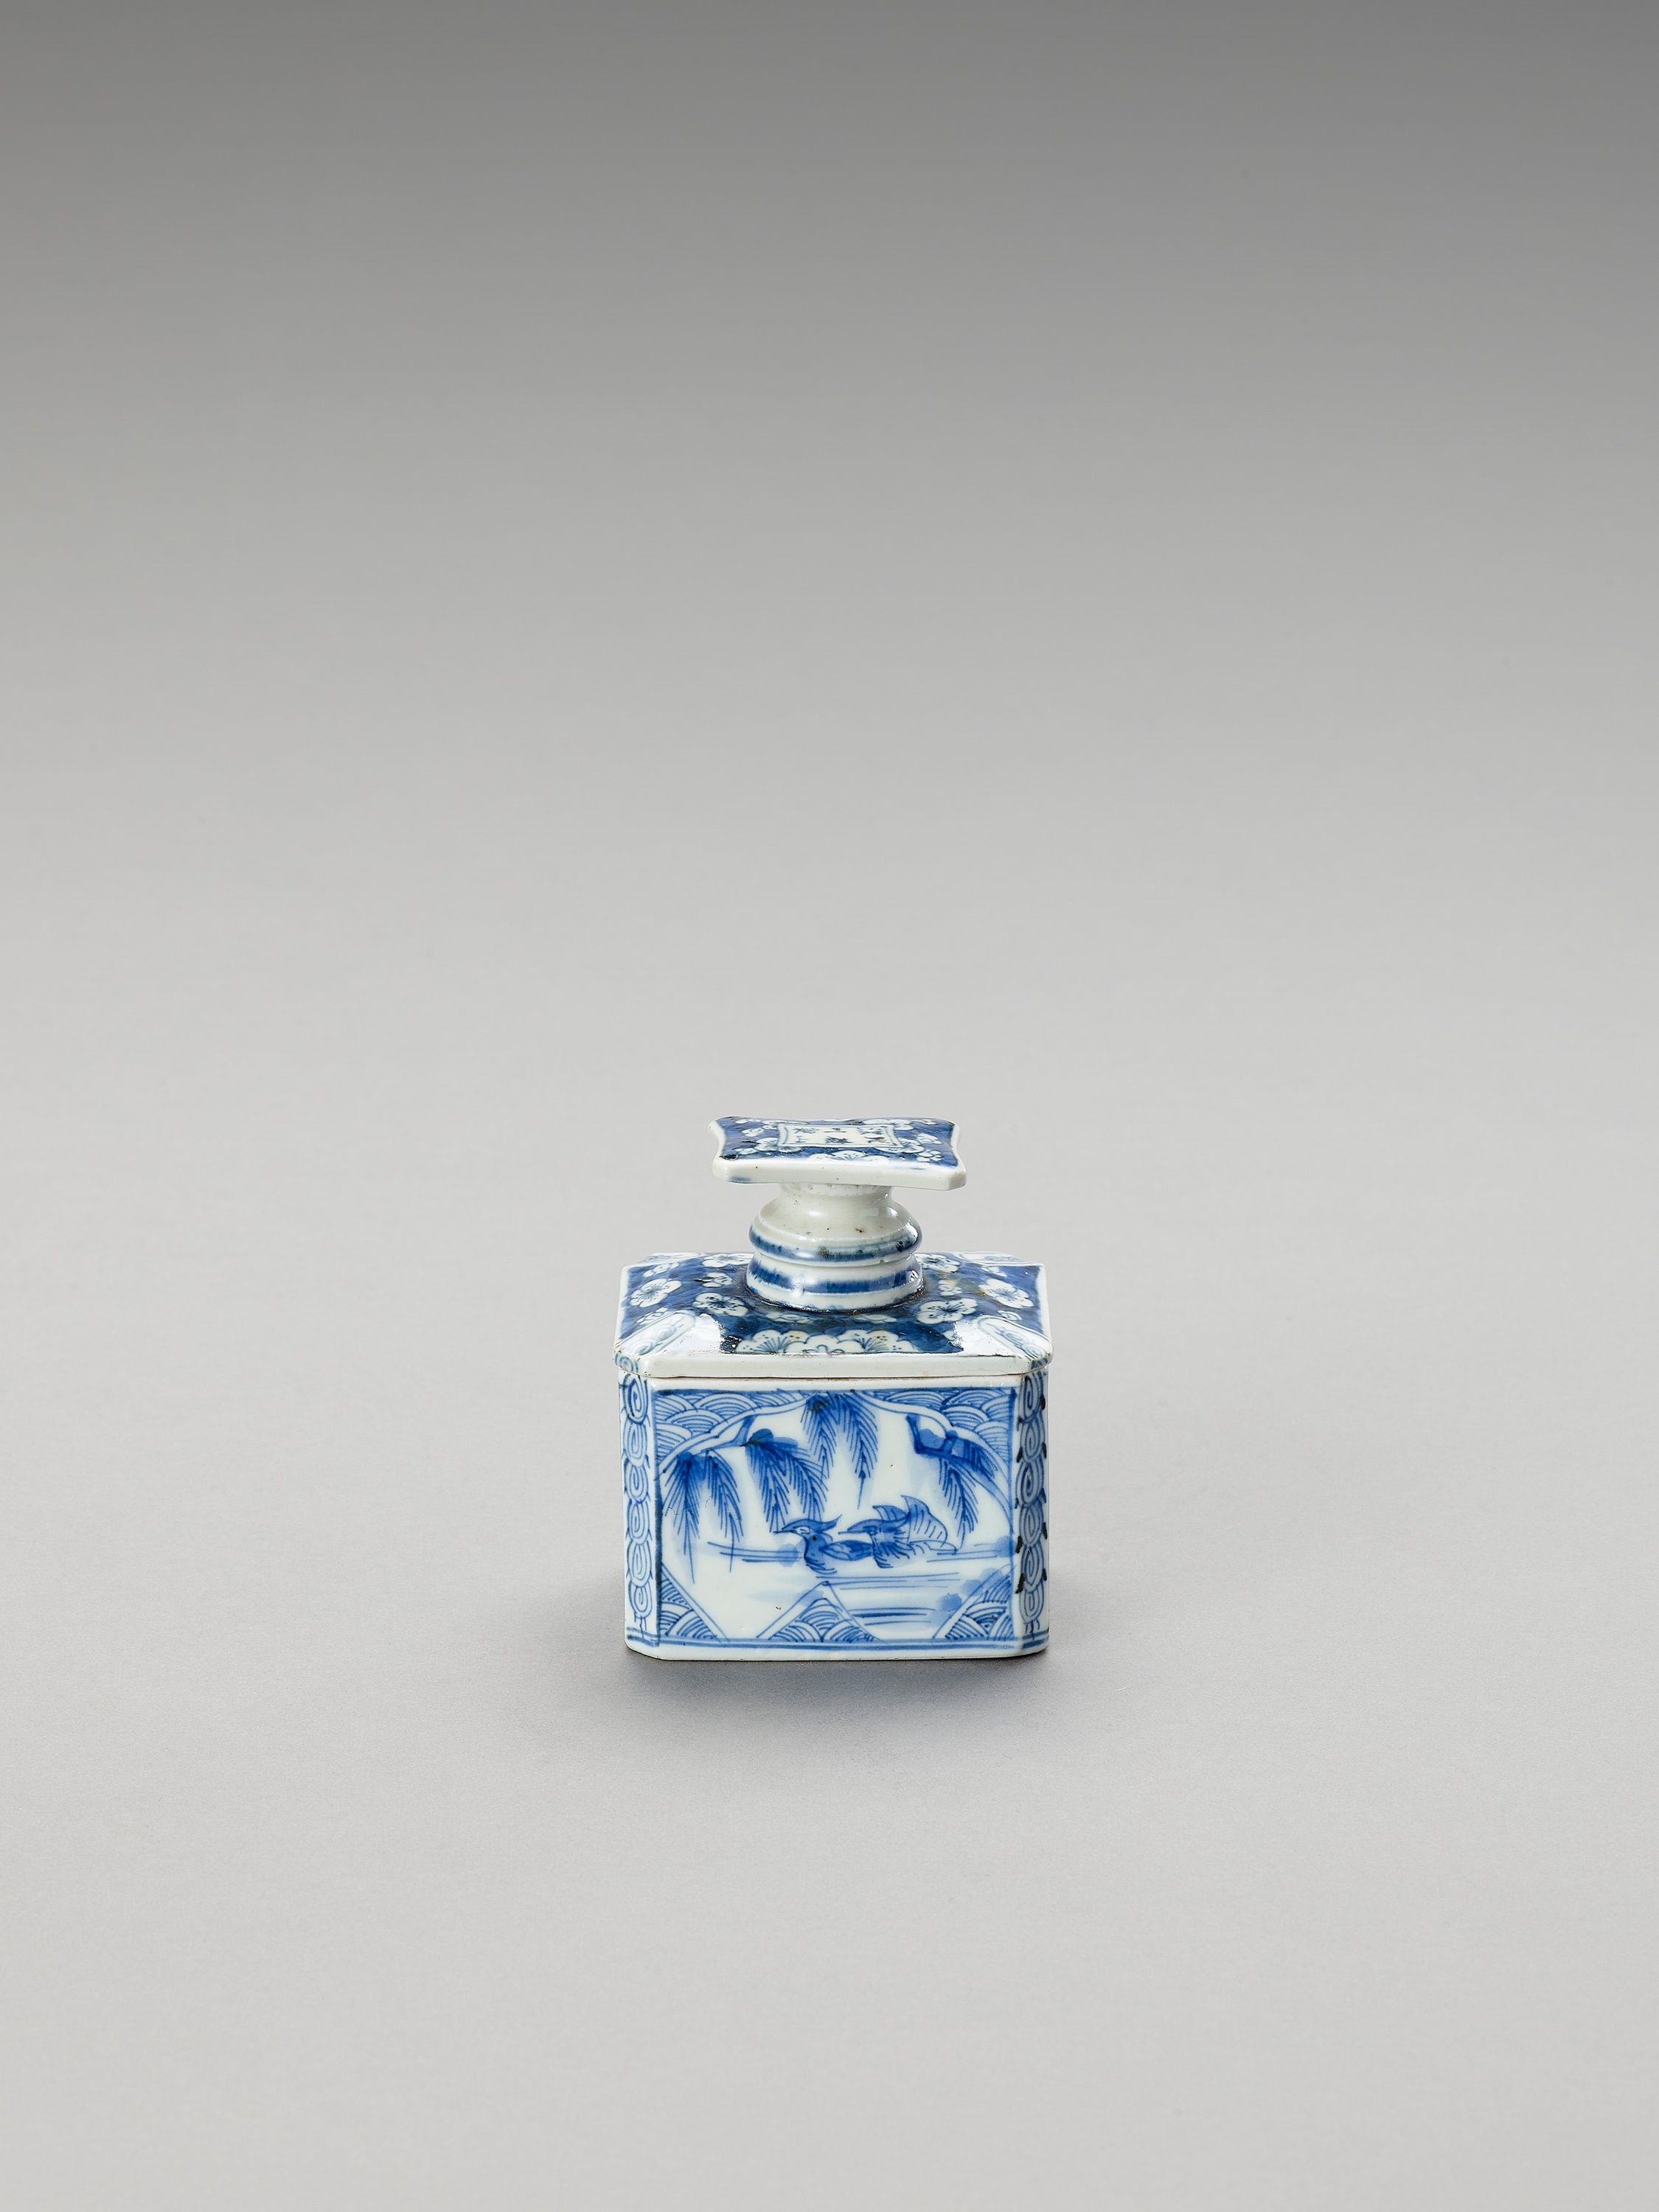 A BLUE AND WHITE FUKAGAWA PORCELAIN TEA CADDY AND COVER - Image 2 of 7